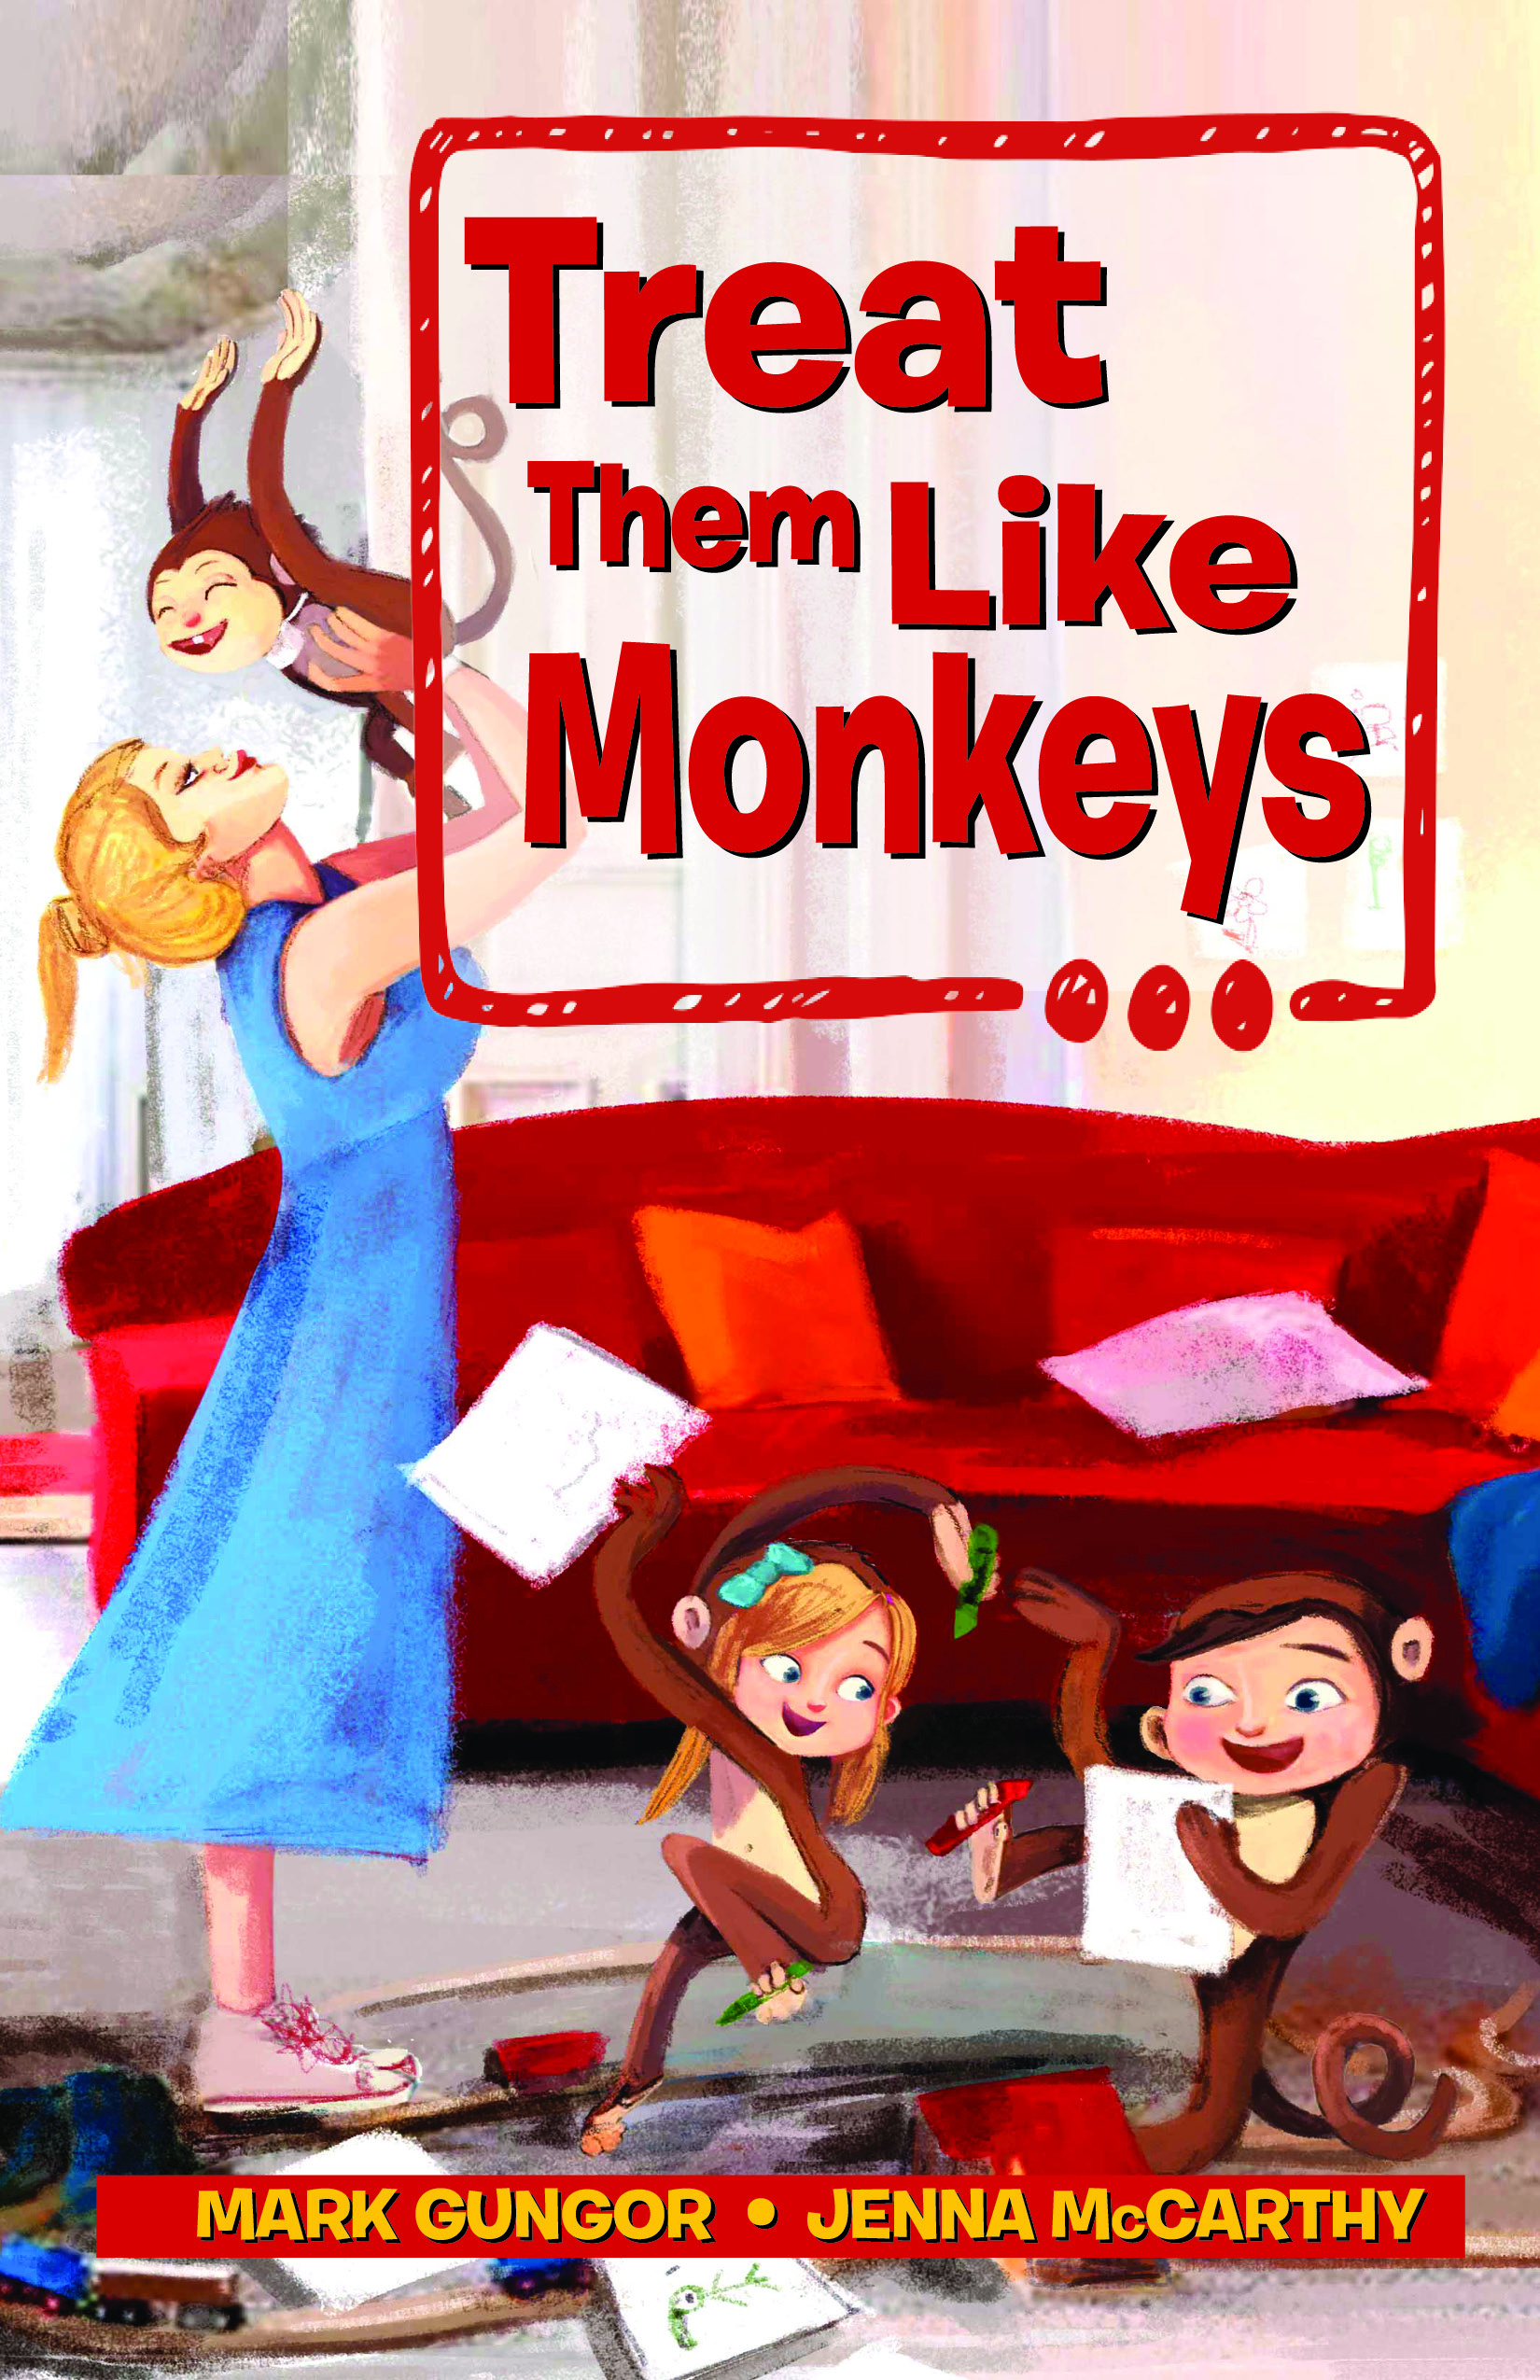 Monkeys cover 1